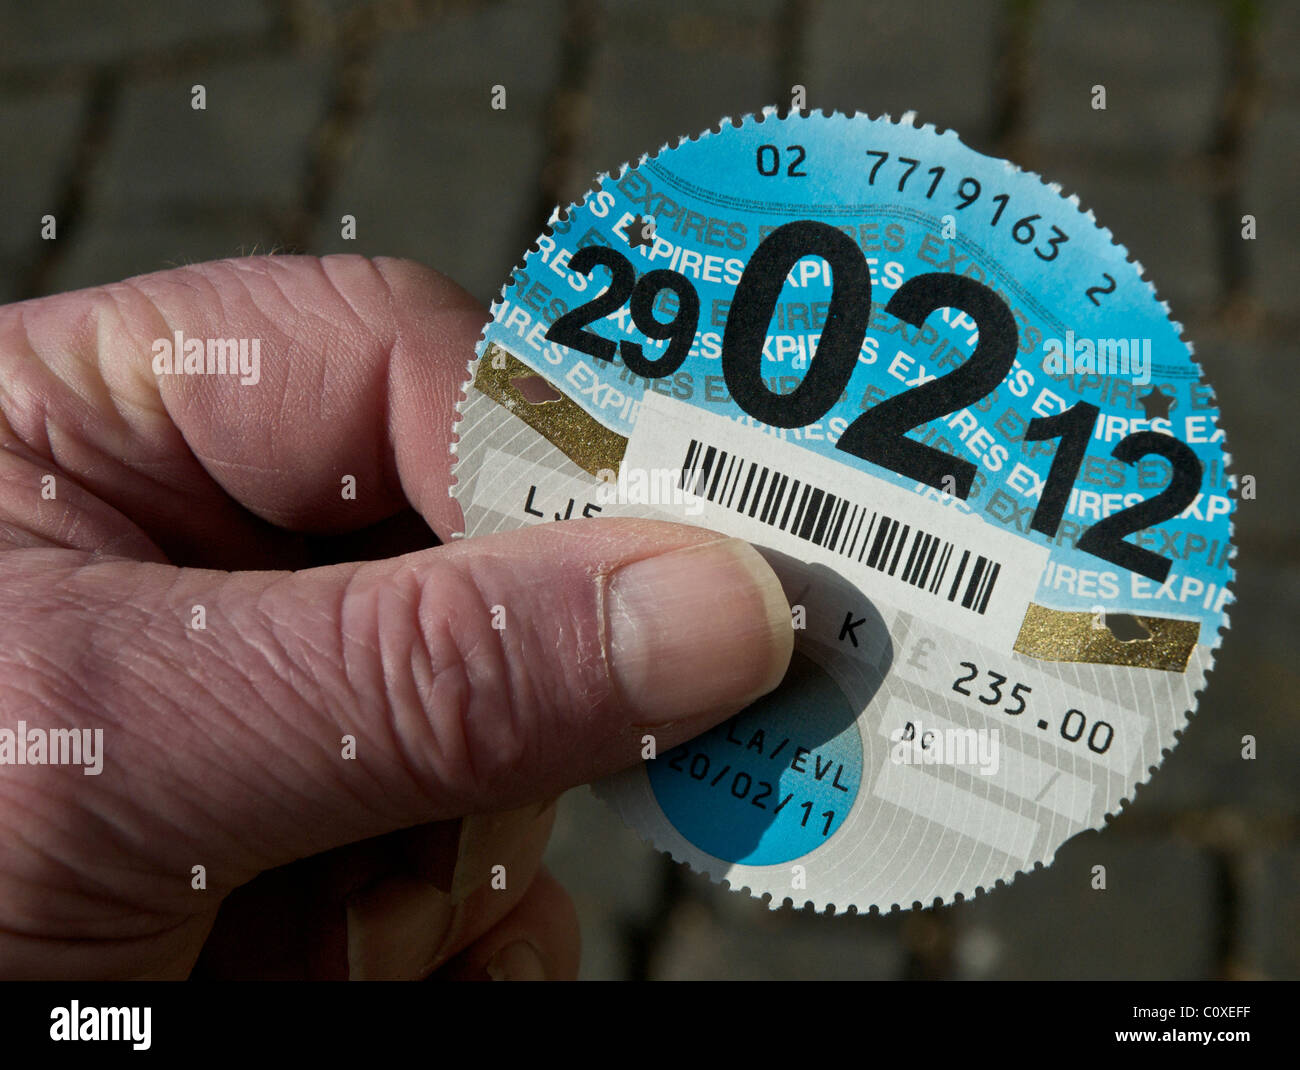 Tax Disc for UK vehicle. Road Fund Licence. DVLA - Stock Image